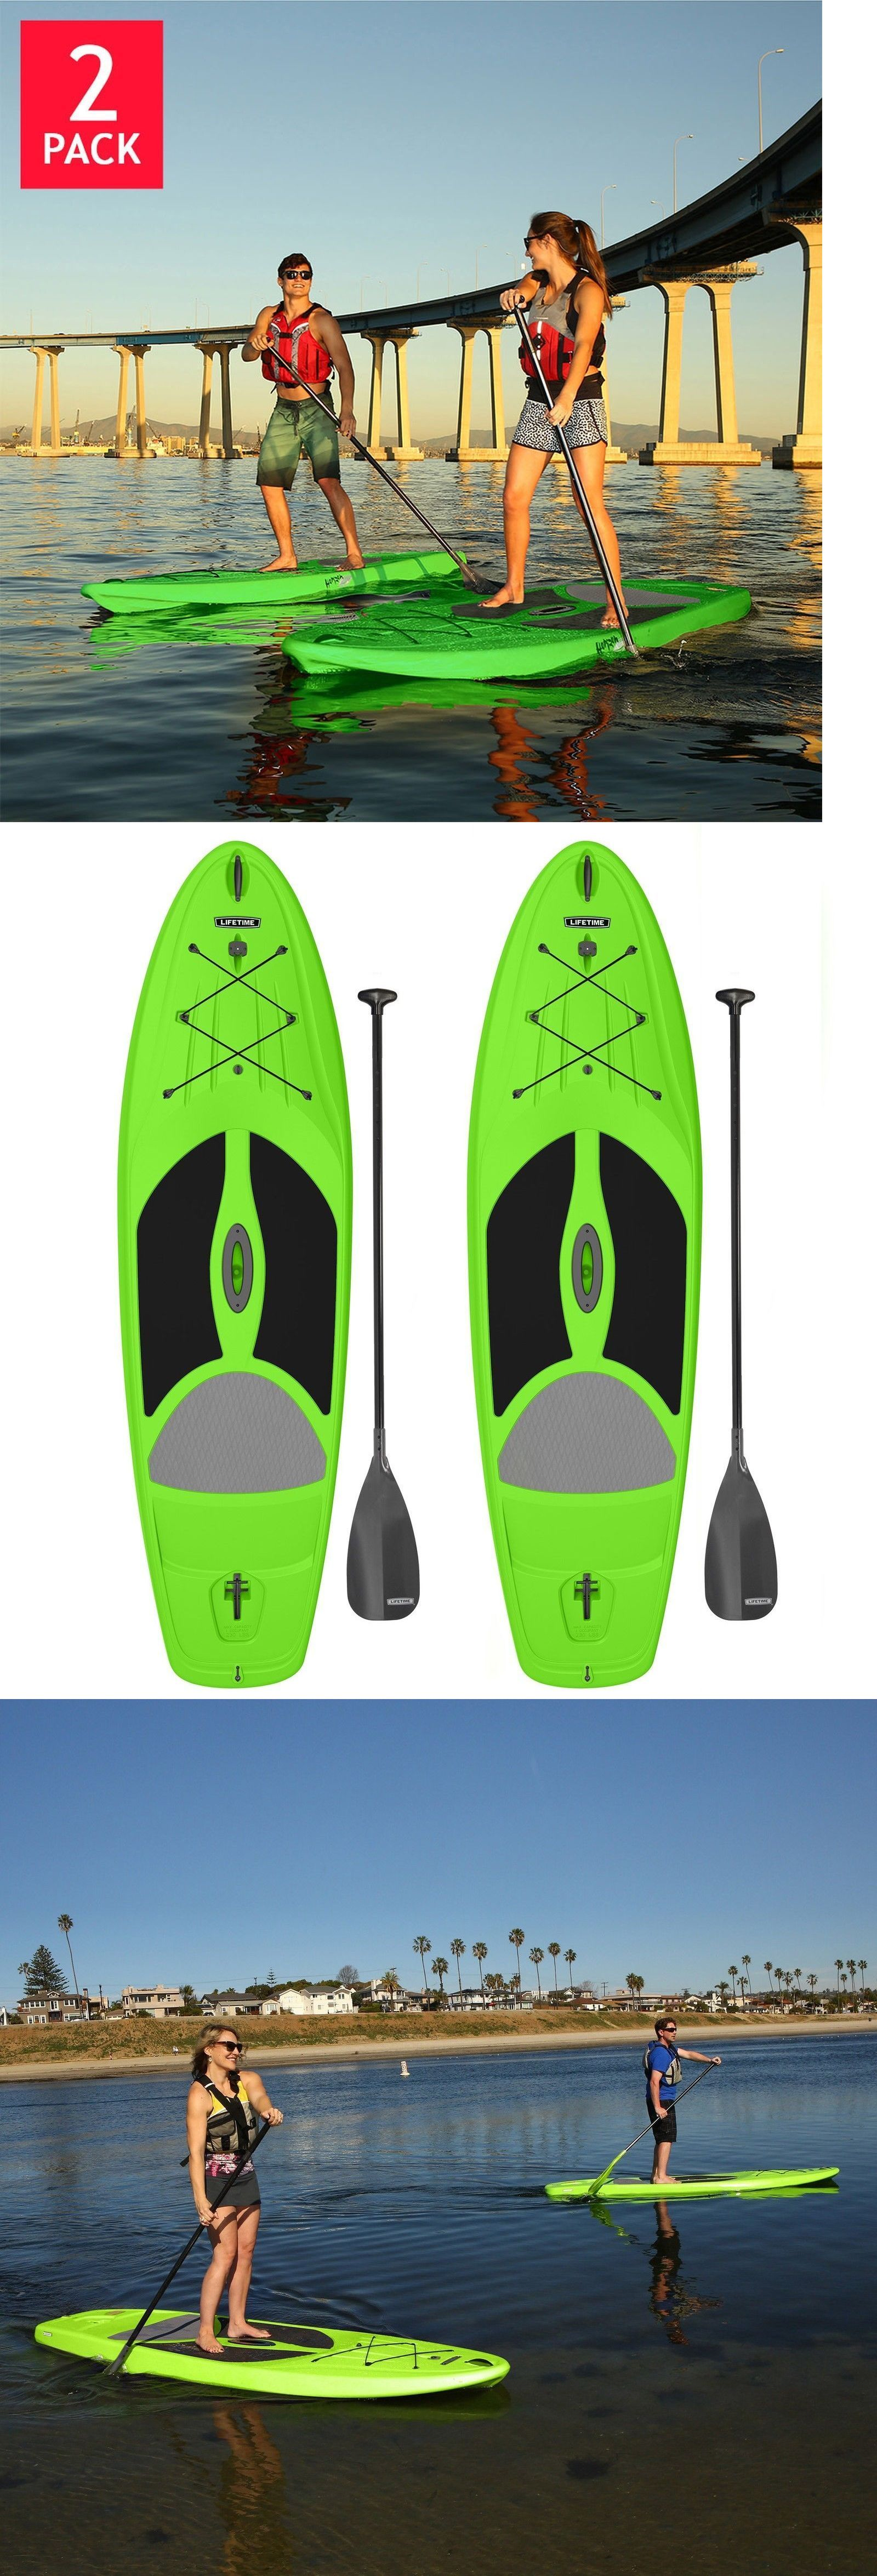 Stand Up Paddleboards 177504: Lifetime Stand Up Paddle Board 2-Pack, 10 Green Hardshell Horizon + Warranty! -> BUY IT NOW ONLY: $600.49 on eBay!